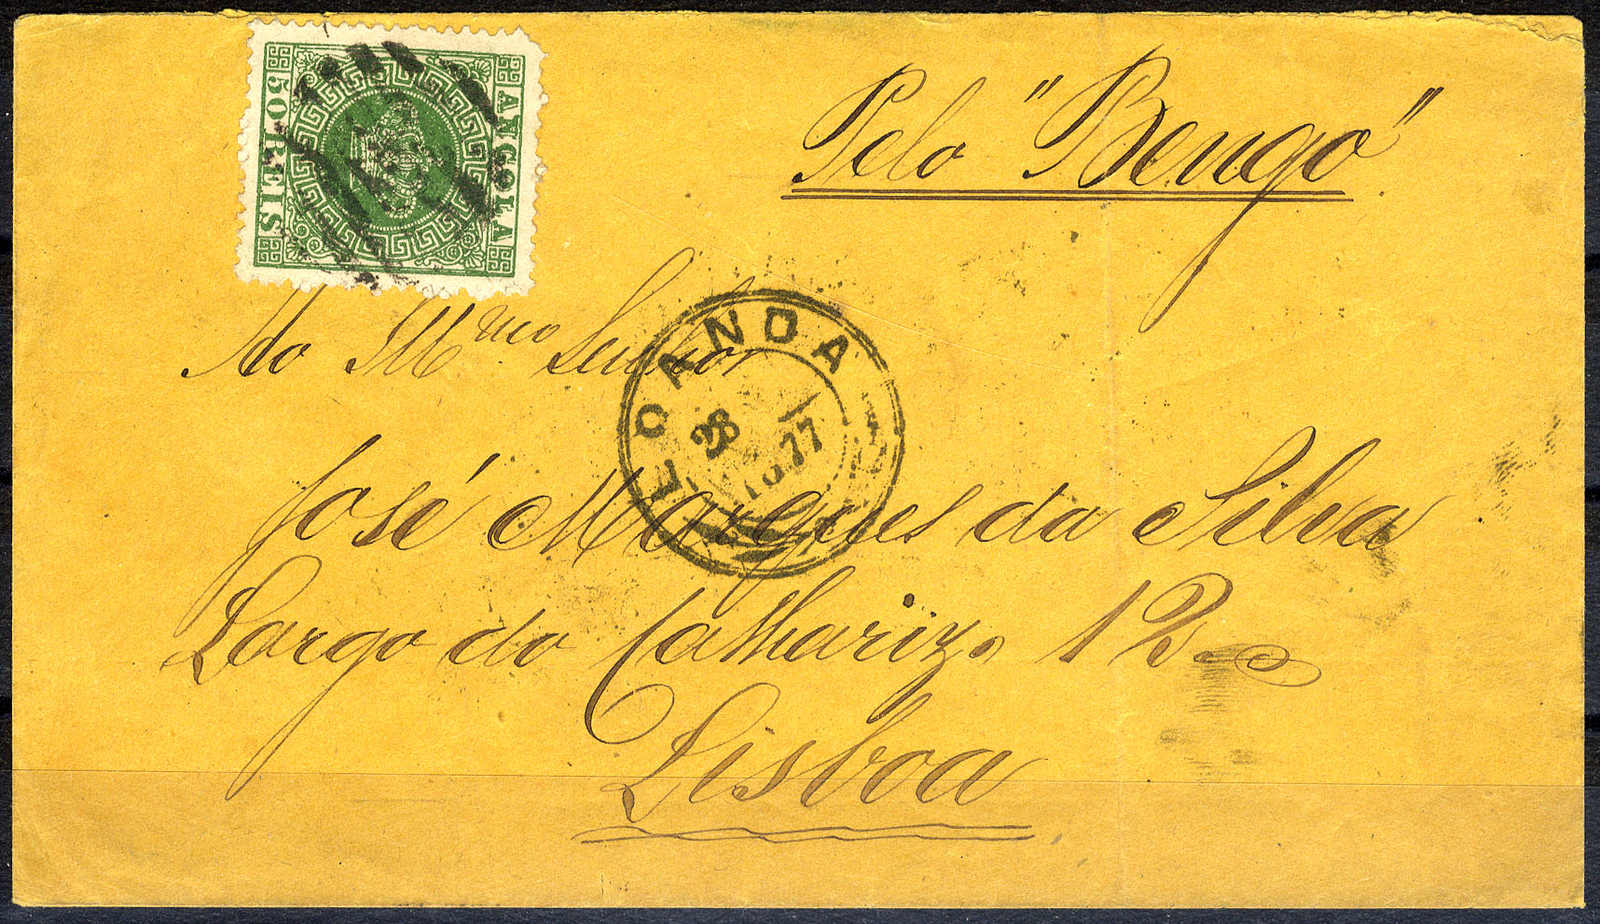 Lot 3374 - other countries angola -  Viennafil Auktionen 63rd LIVE AUCTION